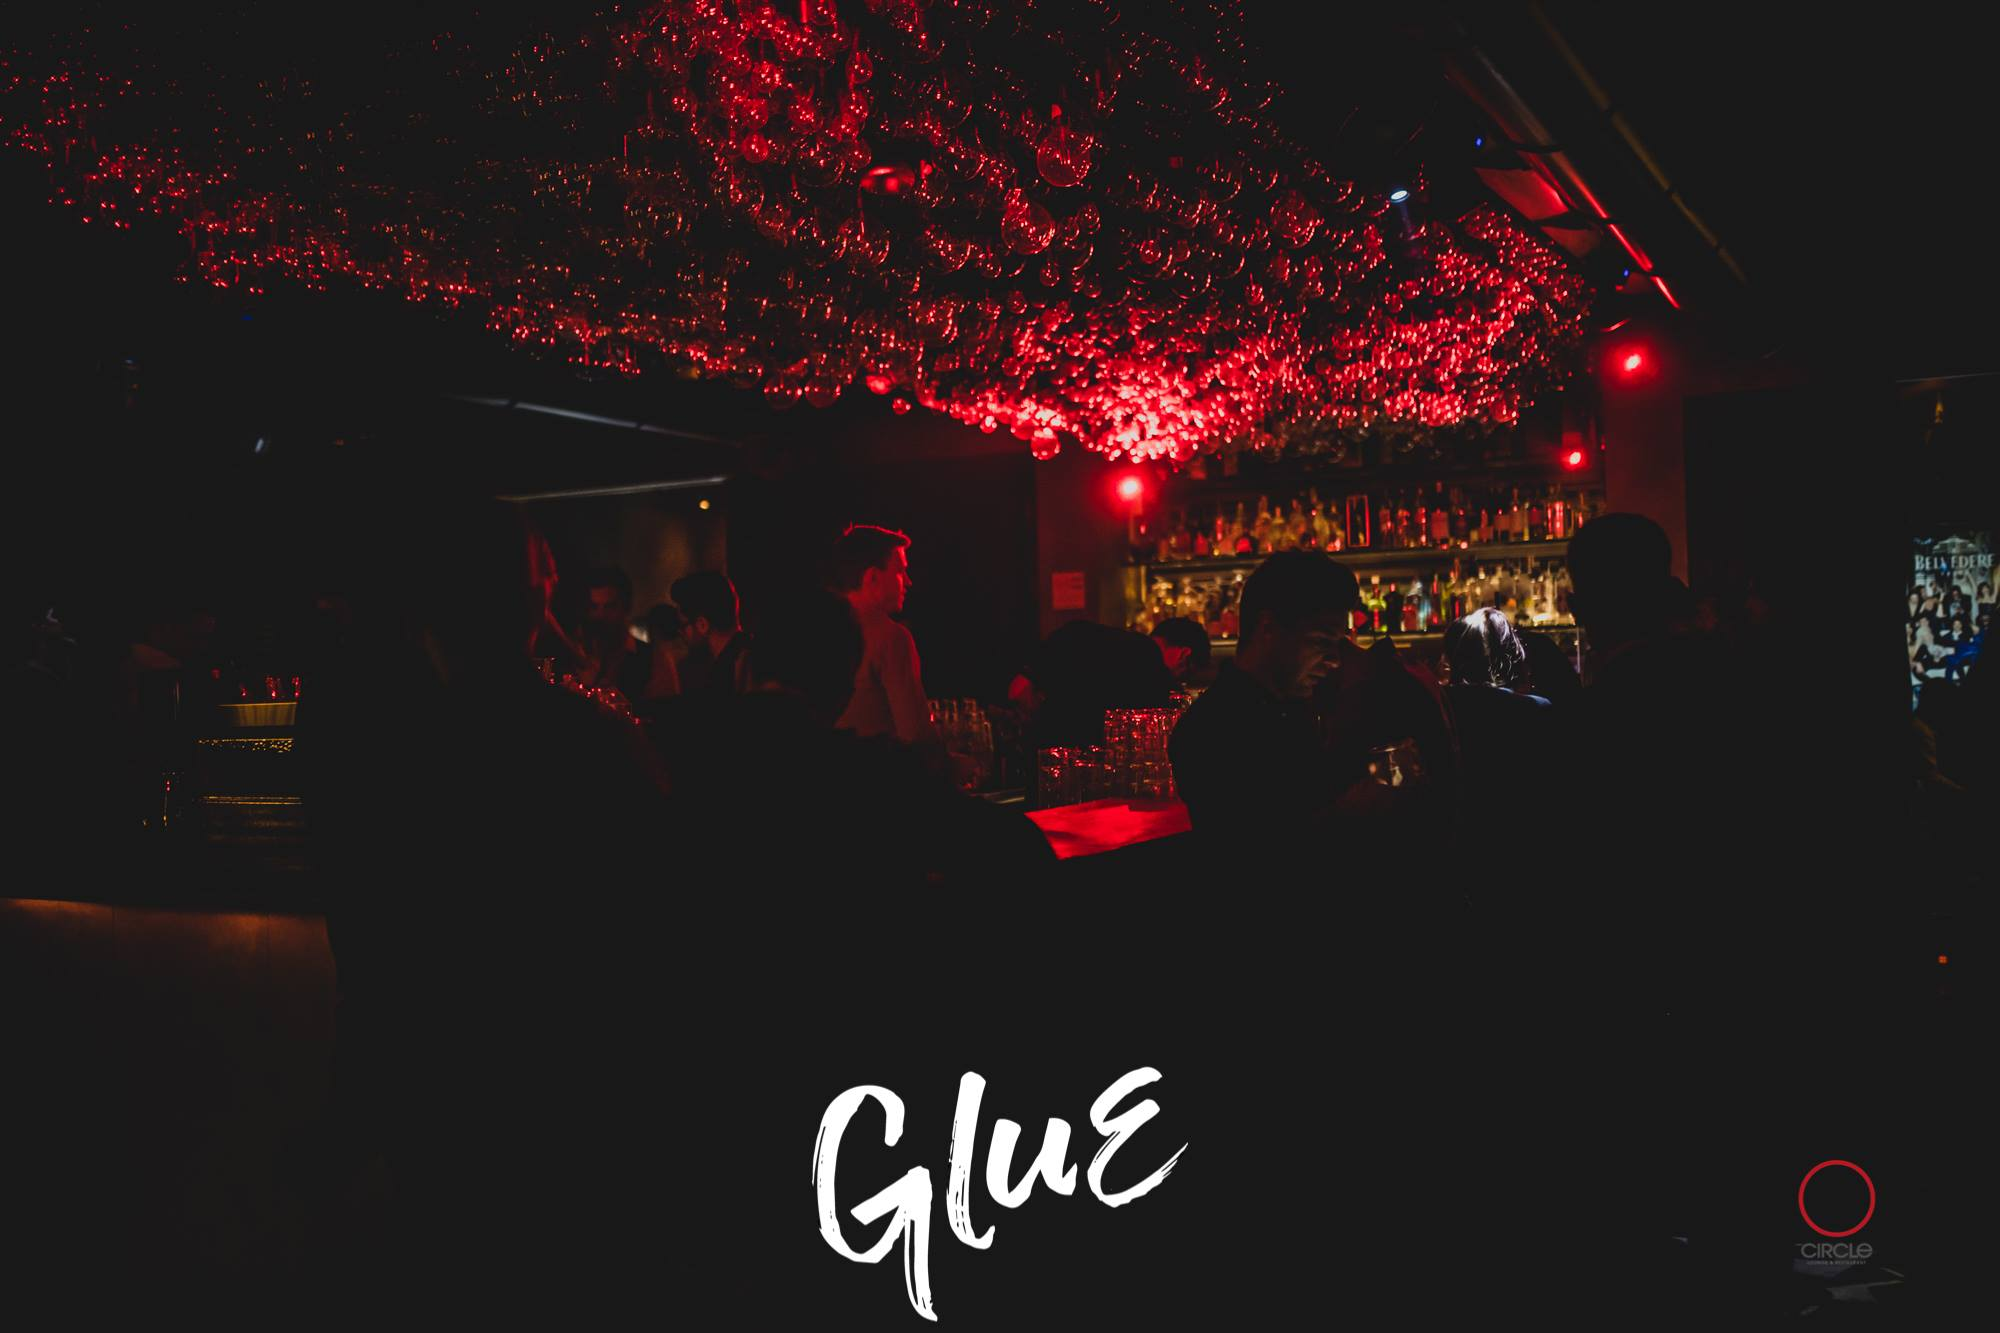 GLUE / HOUSE OF SOUL LIVE SHOW | YOUparti circle milano friday free house music